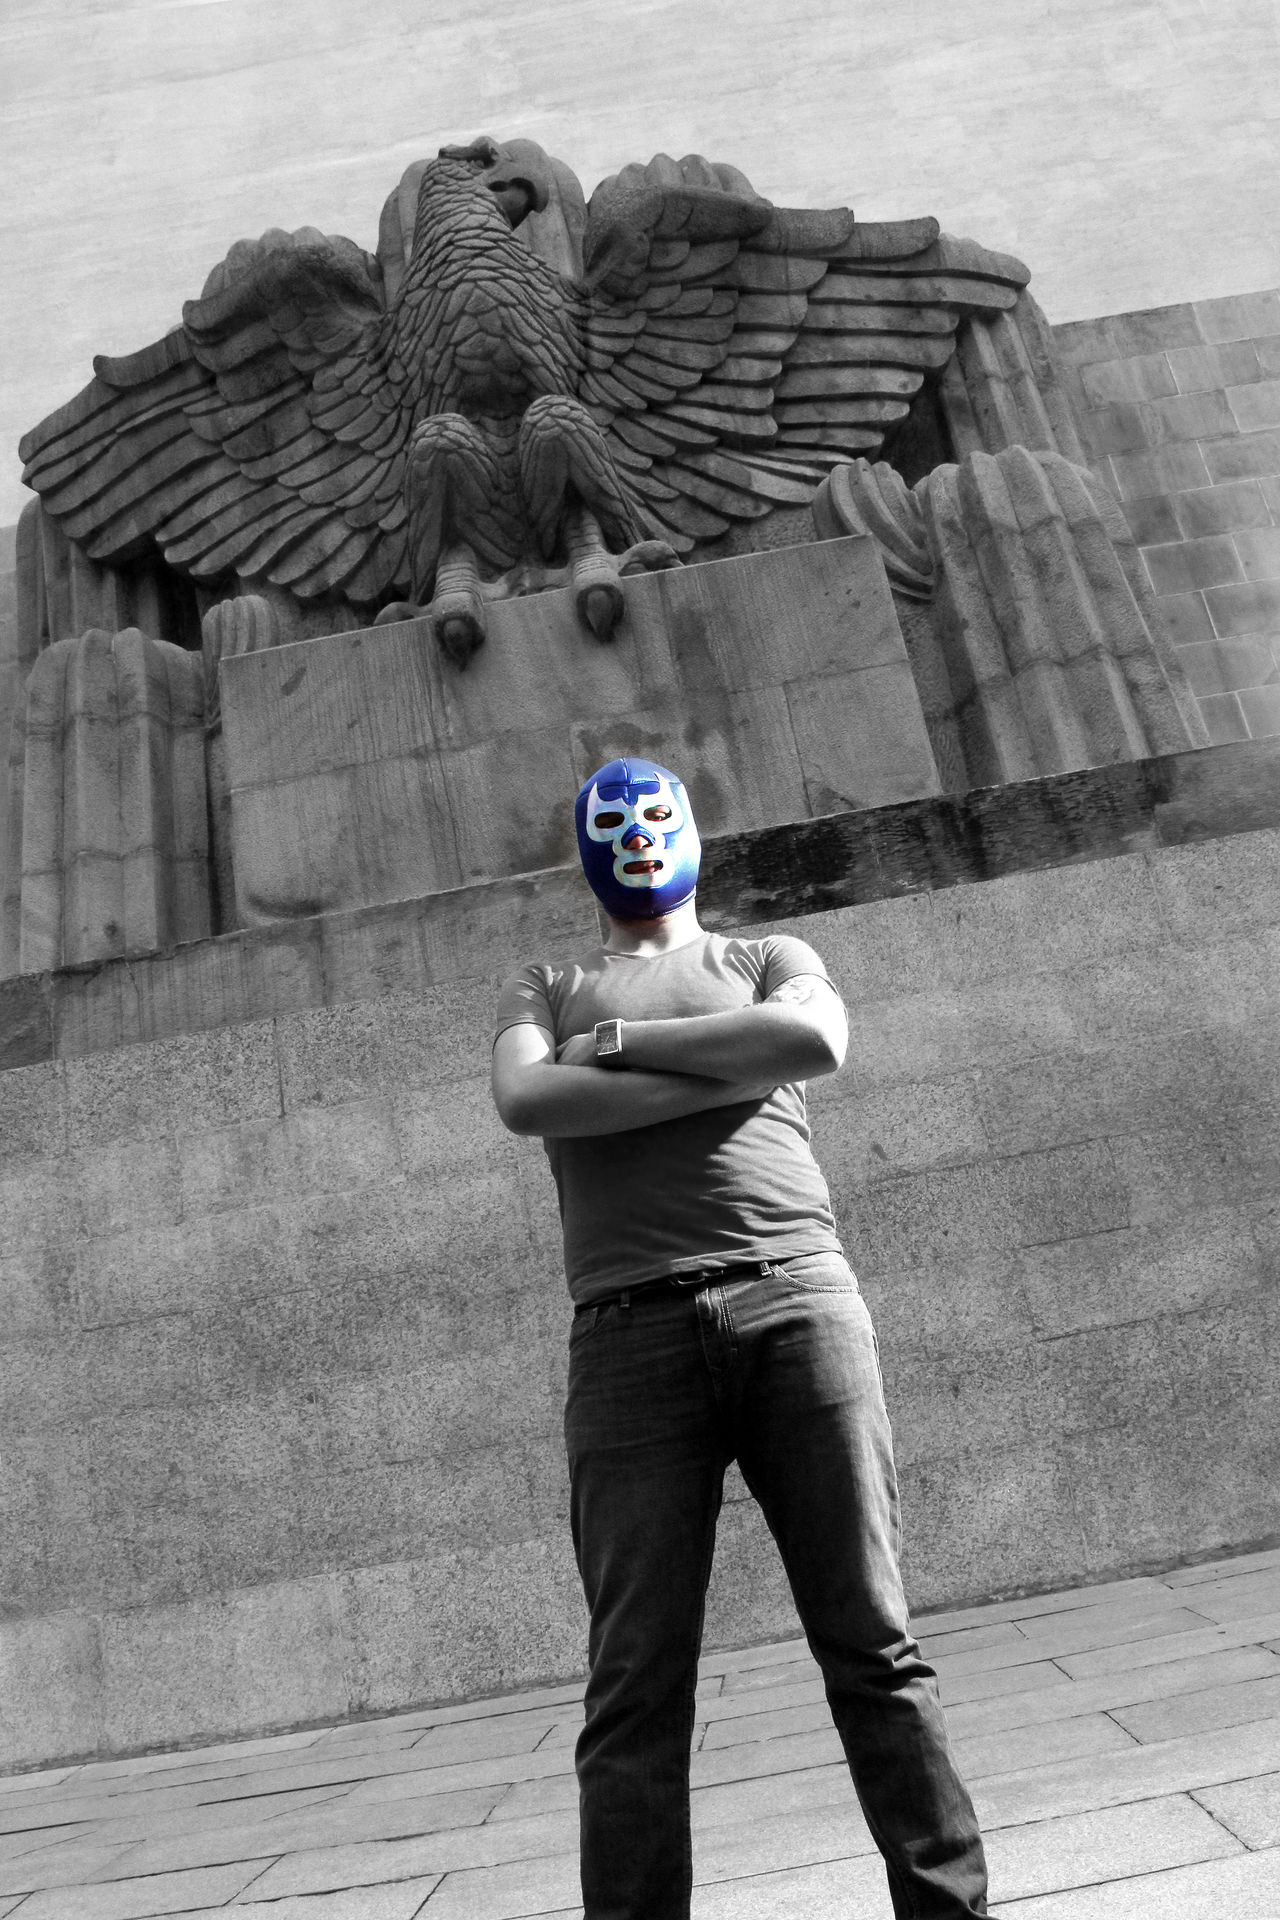 Homenaje al ídolo de la lucha libre Blue Demon Blue Demon Blue Demon Tribute Casual Clothing Eagle Latin Leisure Activity Lifestyles Lucha Libre Man Mask Masked Mexico Portrait Sculpture Wrestling The Innovator